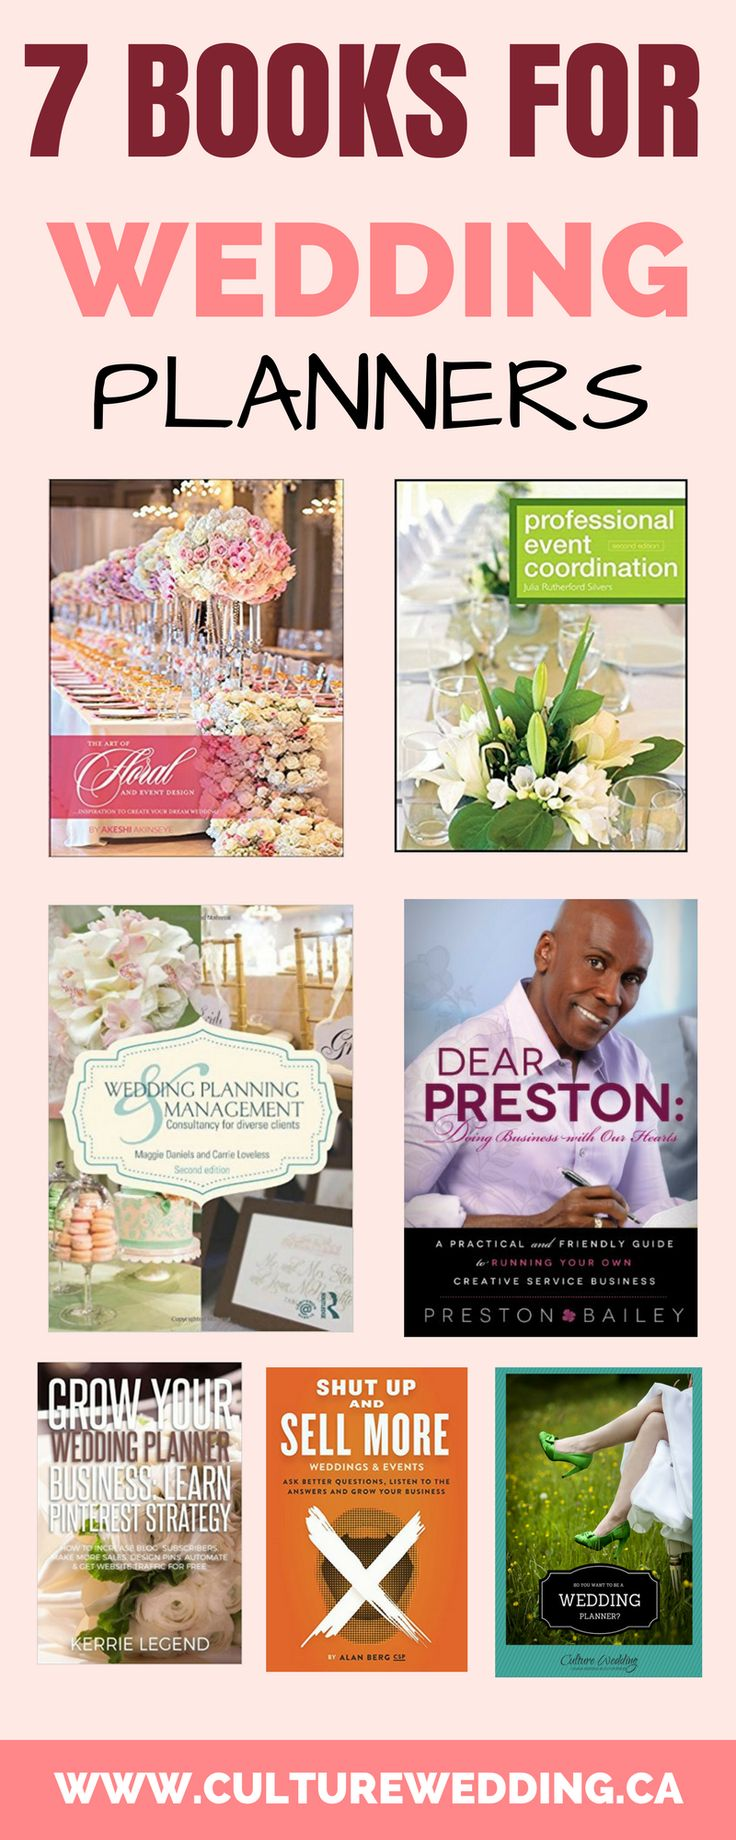 A LIST OF THE BEST WEDDING PLANNER BOOK. Looking to grow your event planning business? Here is a list of the best wedding planning books to help grow your business. Grow your wedding business with these amazing tips. How to start an event planning business. How to make money with your wedding business. #eventplanning #weddingplanning.